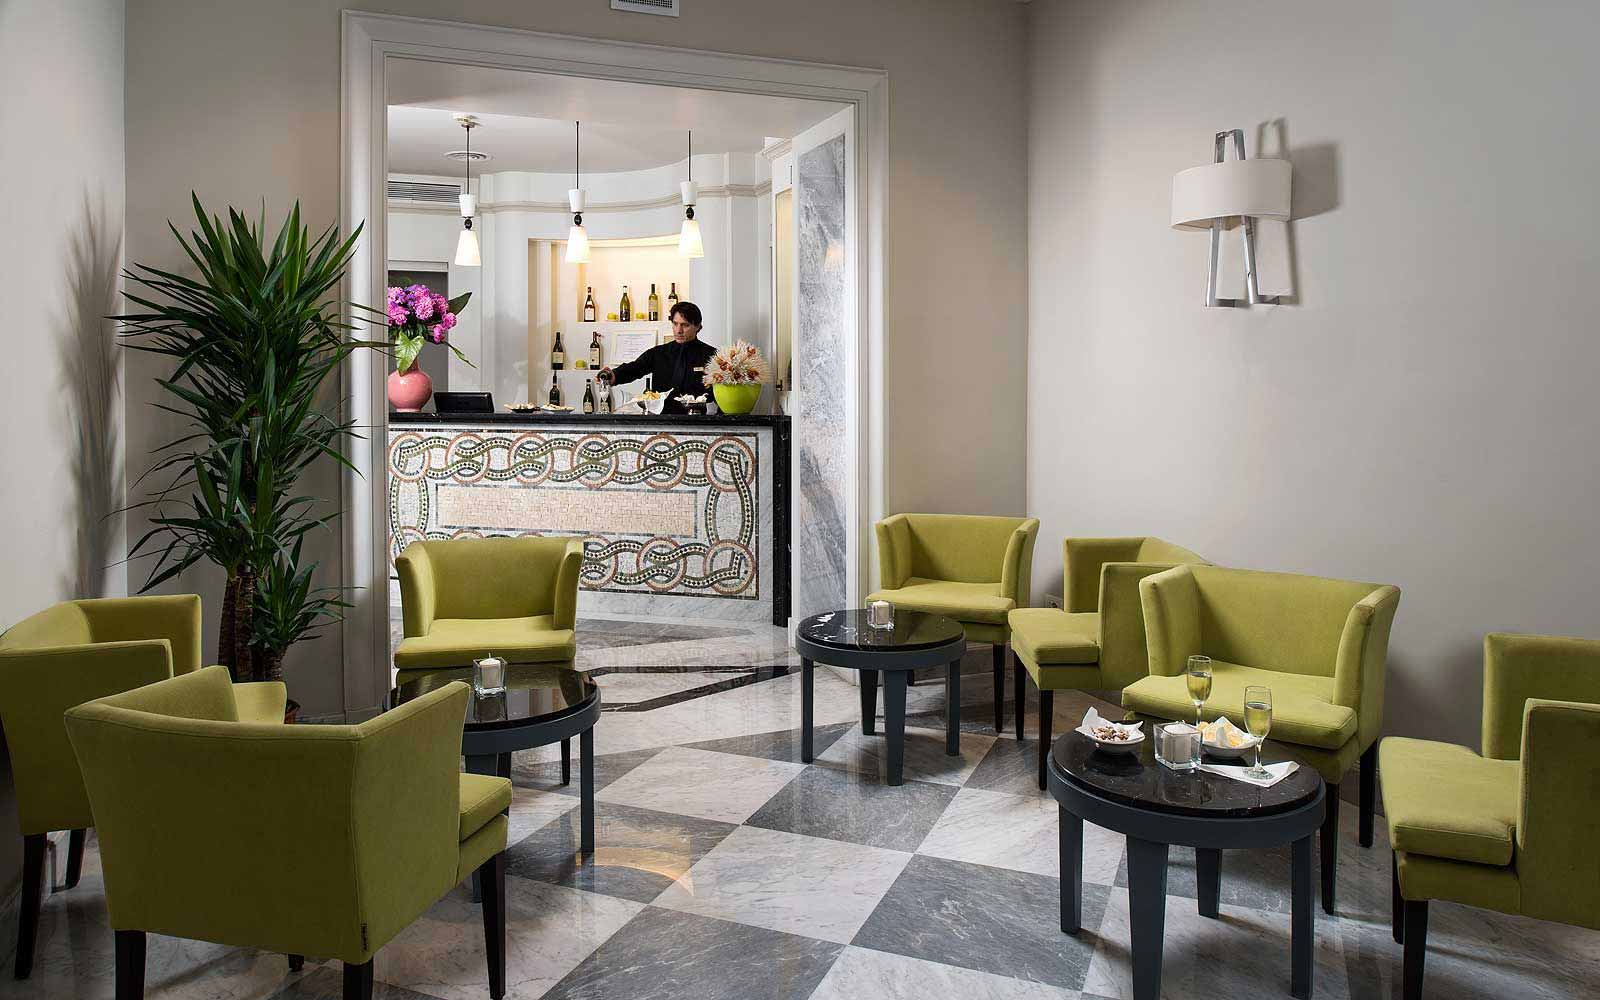 Bar at Hotel Imperiale